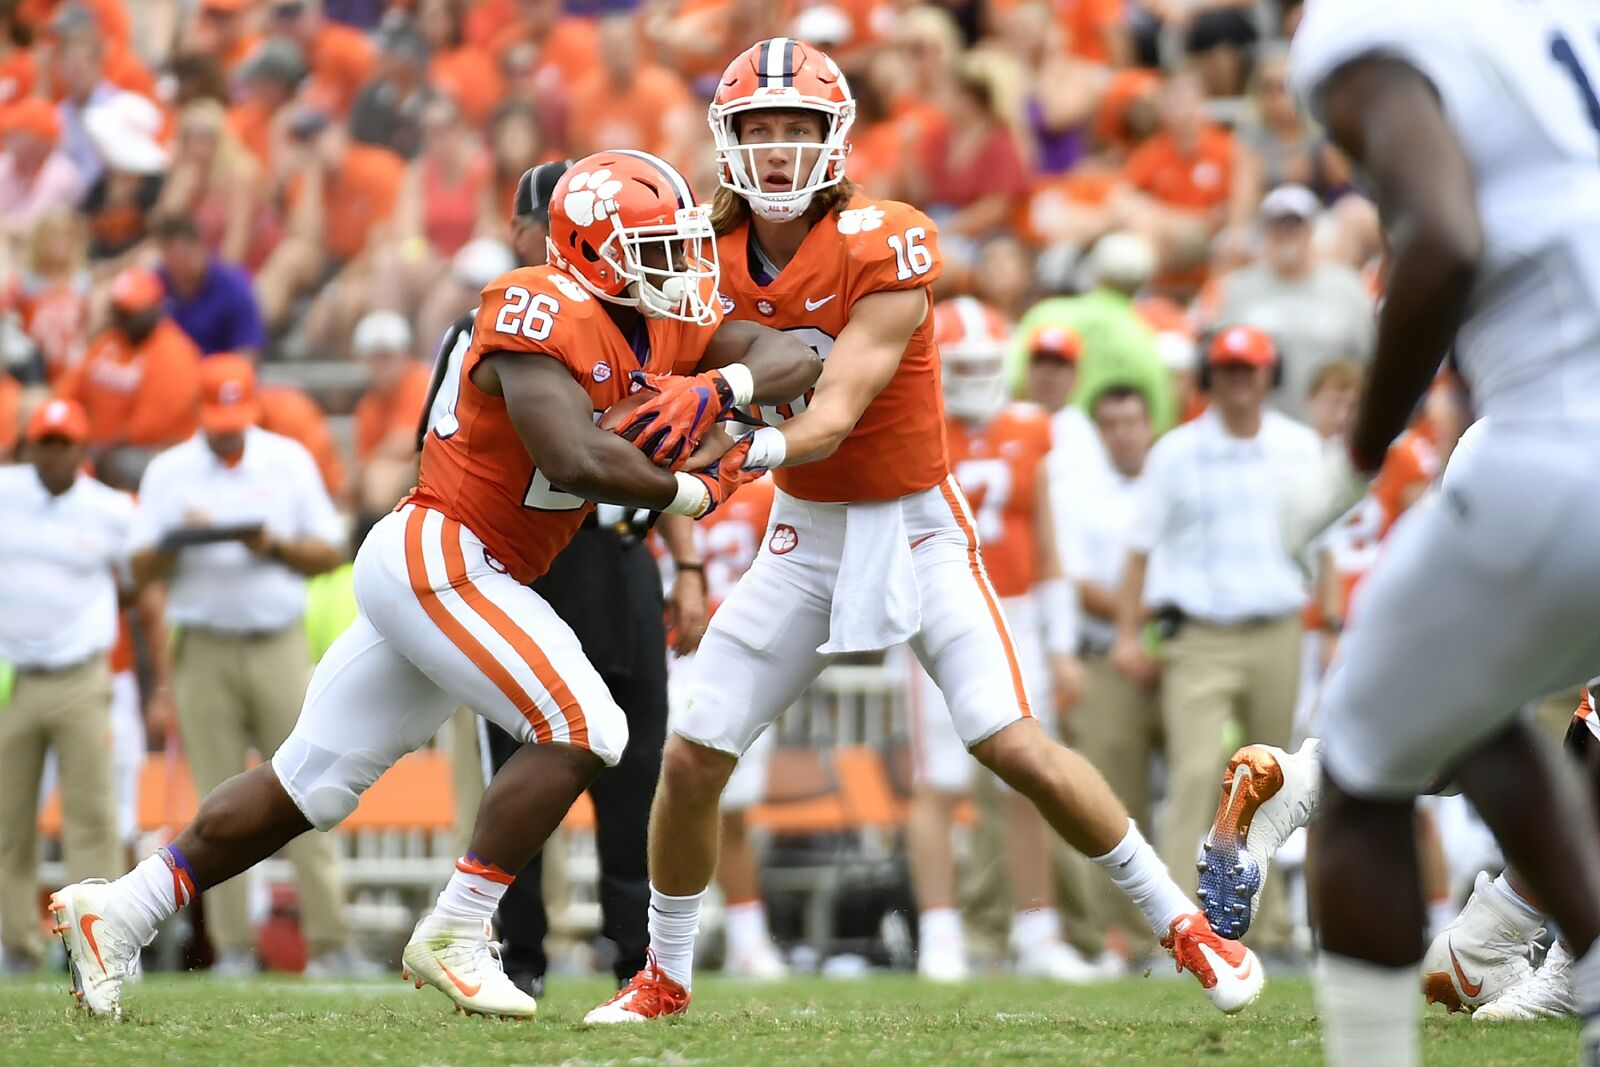 Clemson Football: Will Saturday be Trevor Lawrence's breakout game?